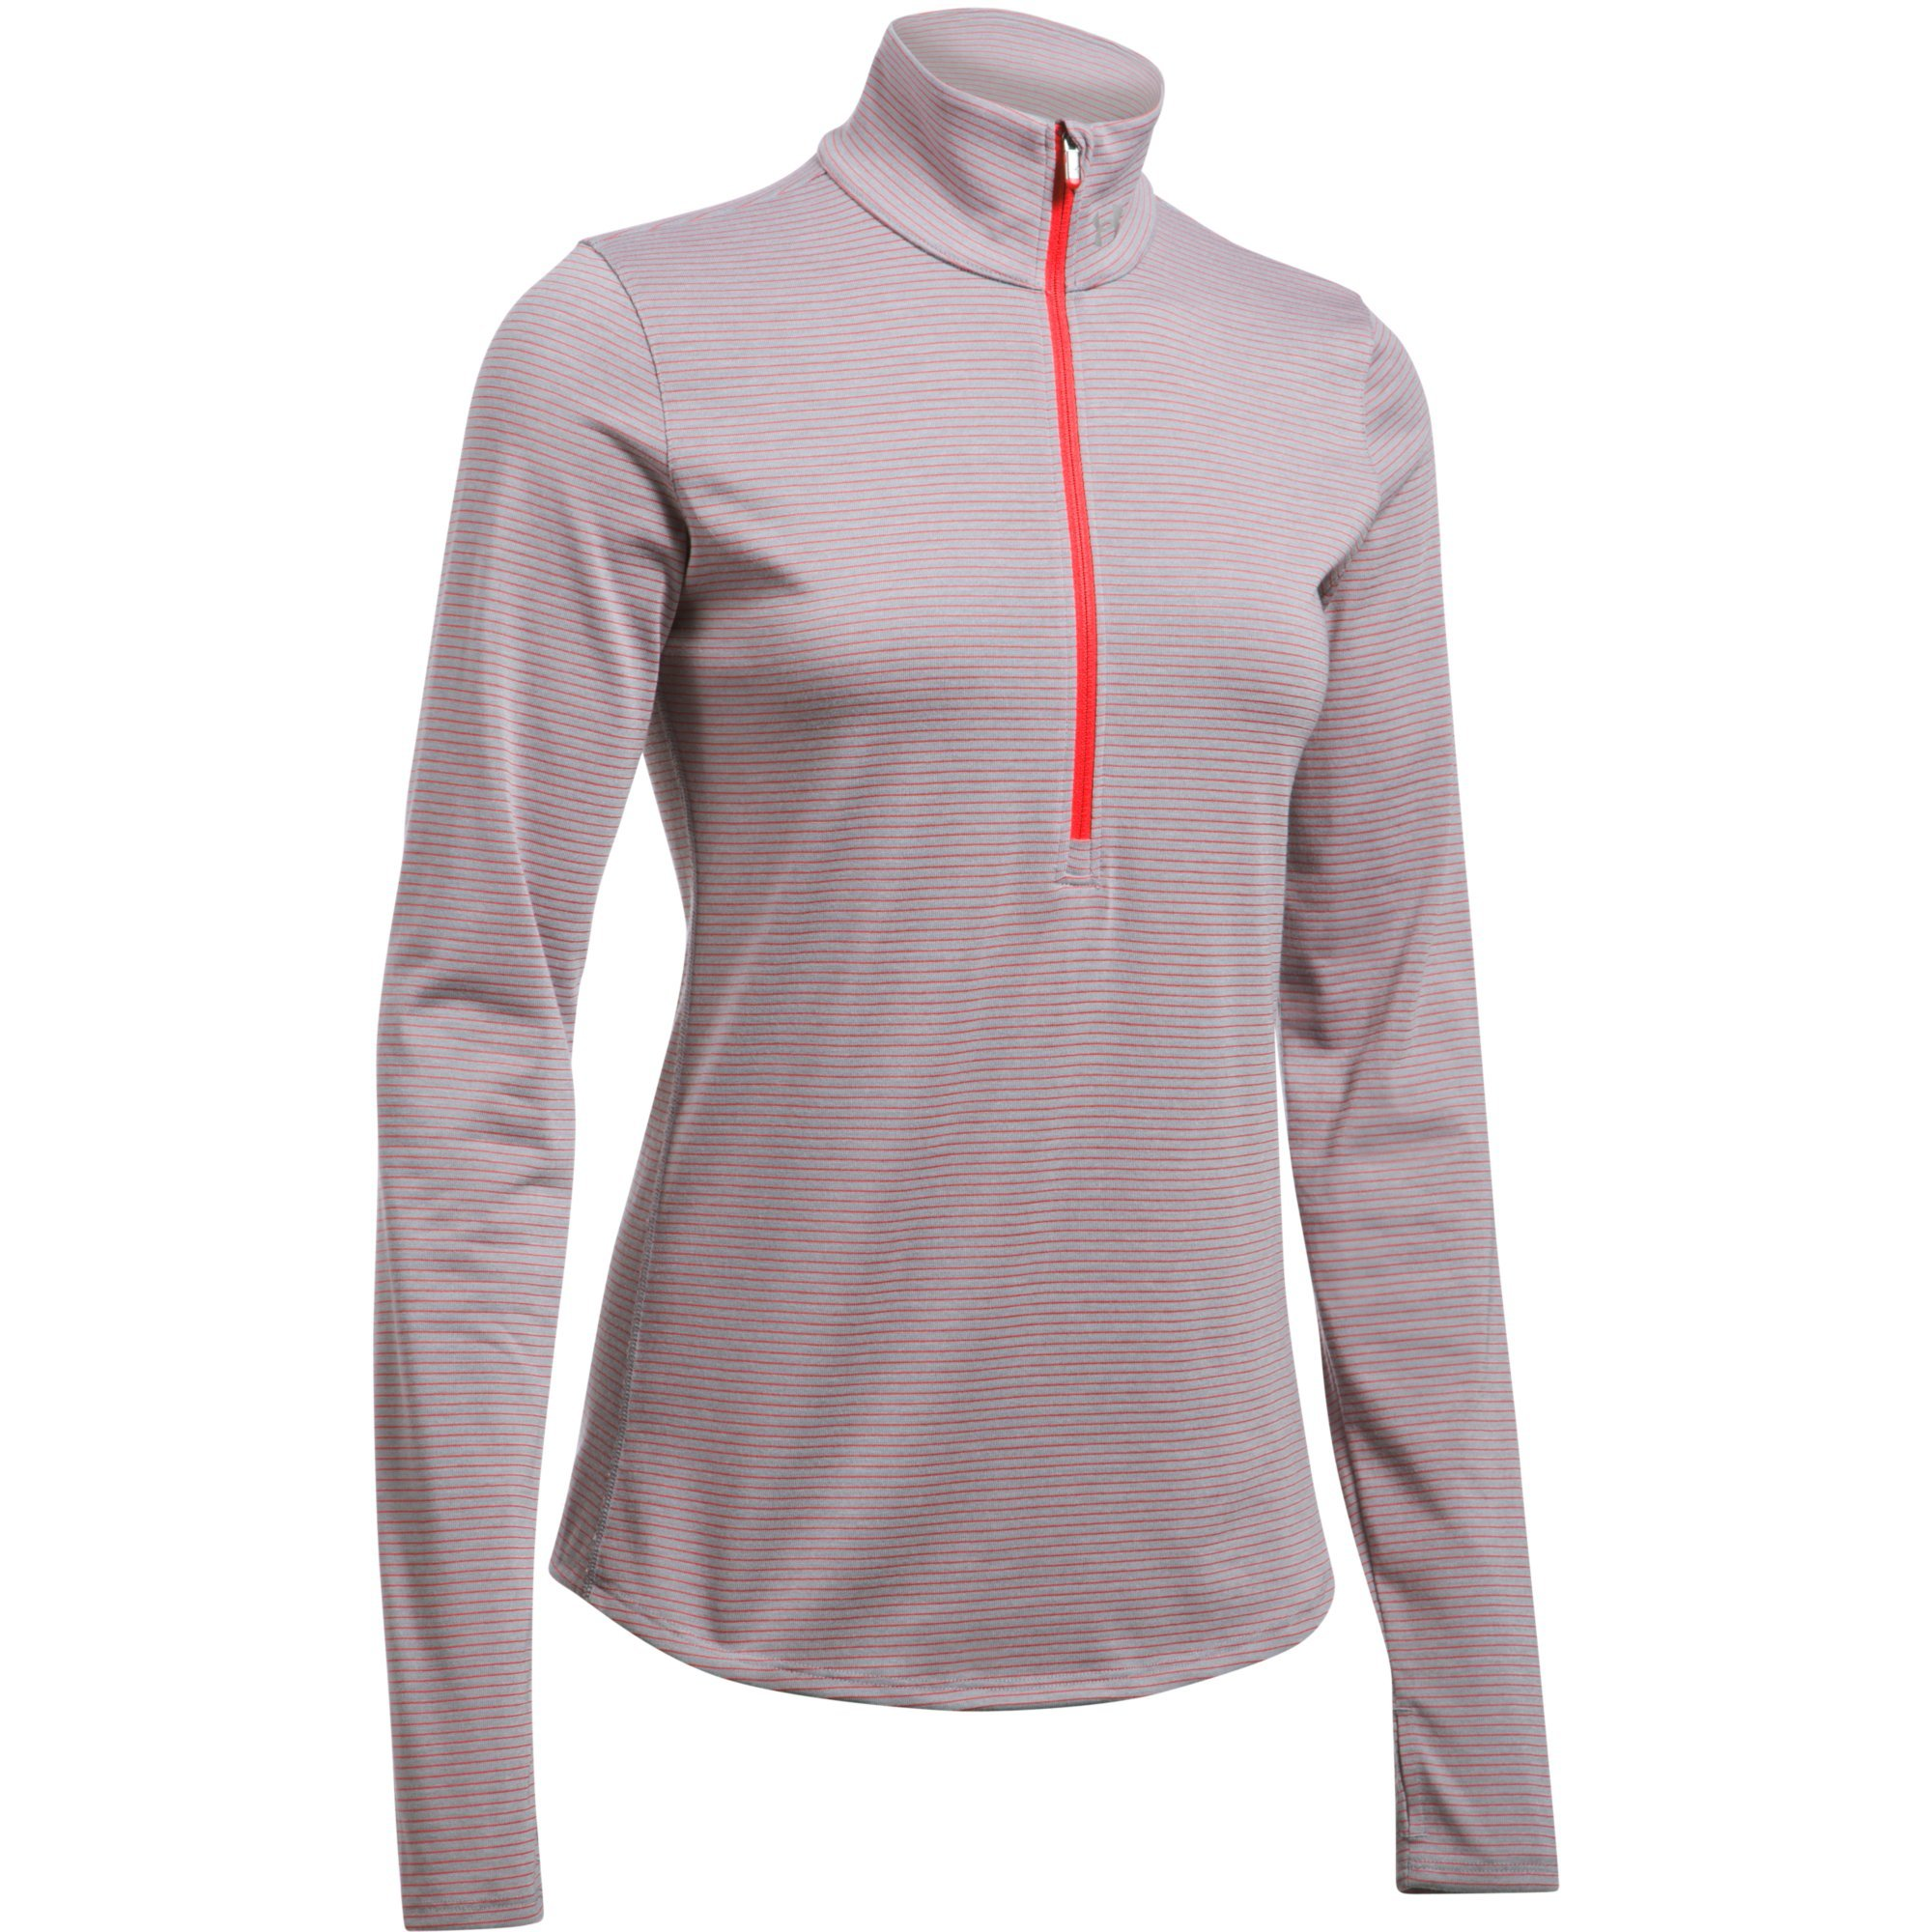 Under Armour Threadborne Streaker 1/2 Zip Women's Running Top - SS17 - Large - Grey by Under Armour